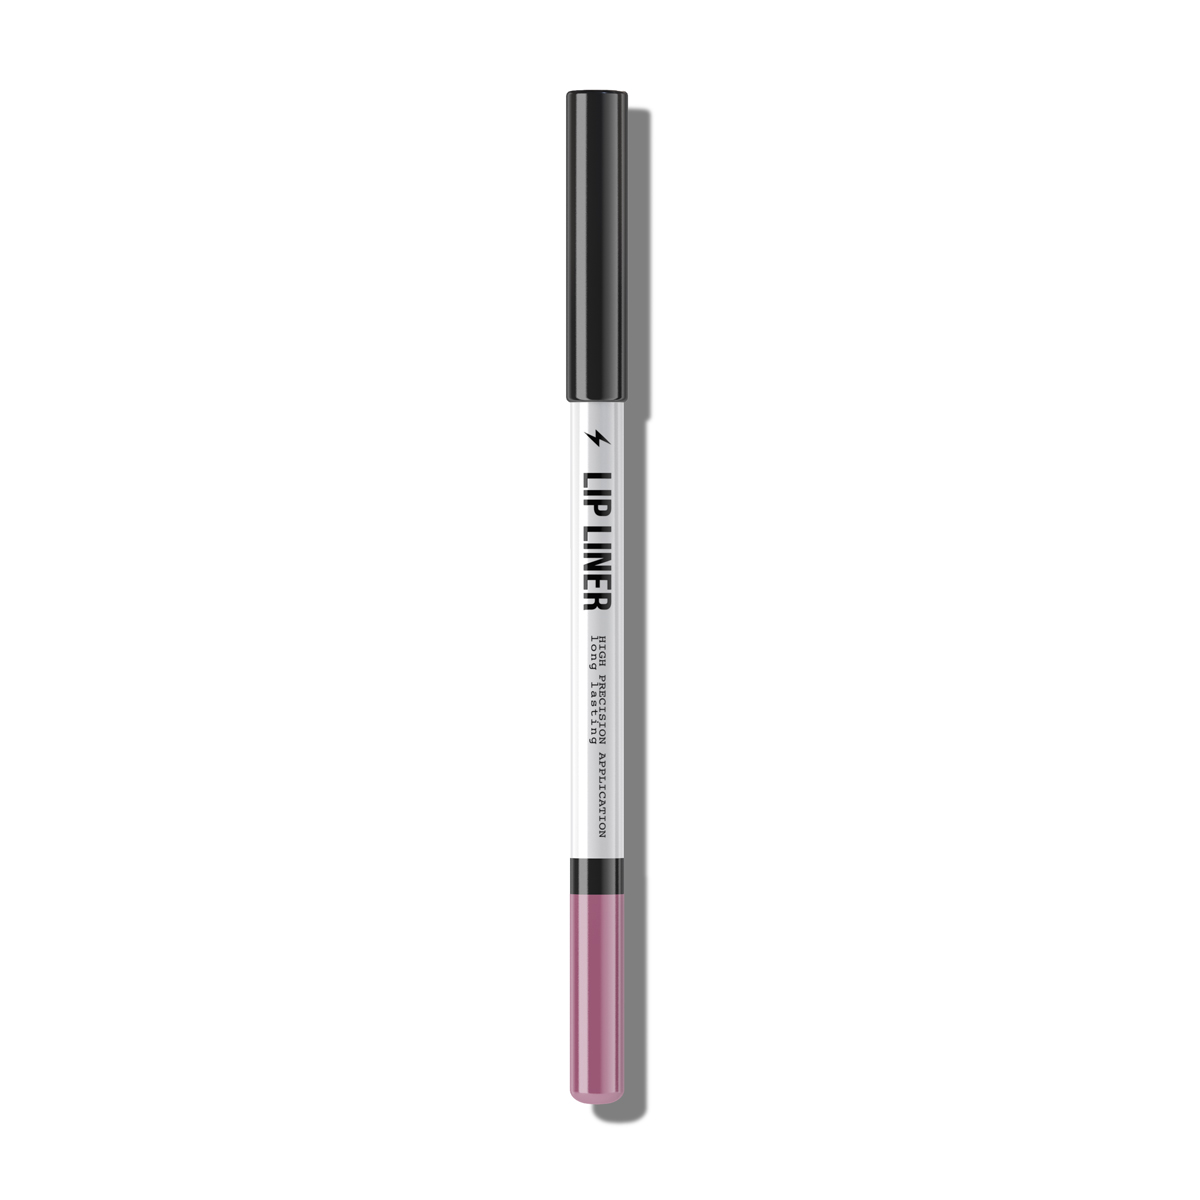 Olovka za usne LIPLINER 33 Dusty Rose